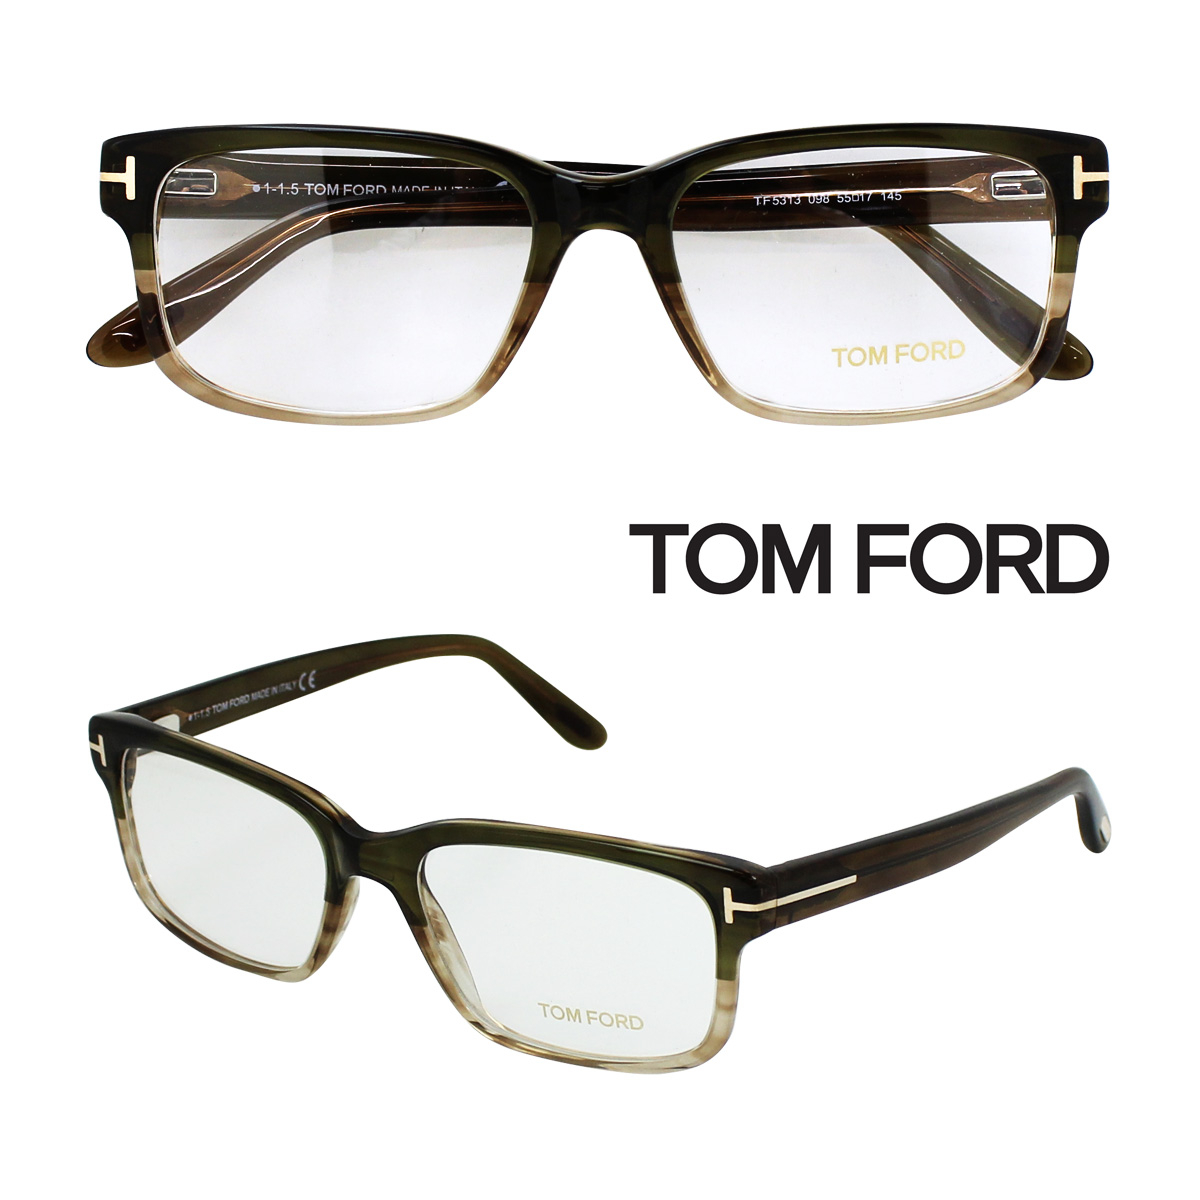 fdf449cc86c2 Whats up Sports   SOLD OUT  Tom Ford TOM FORD glasses eyewear ...